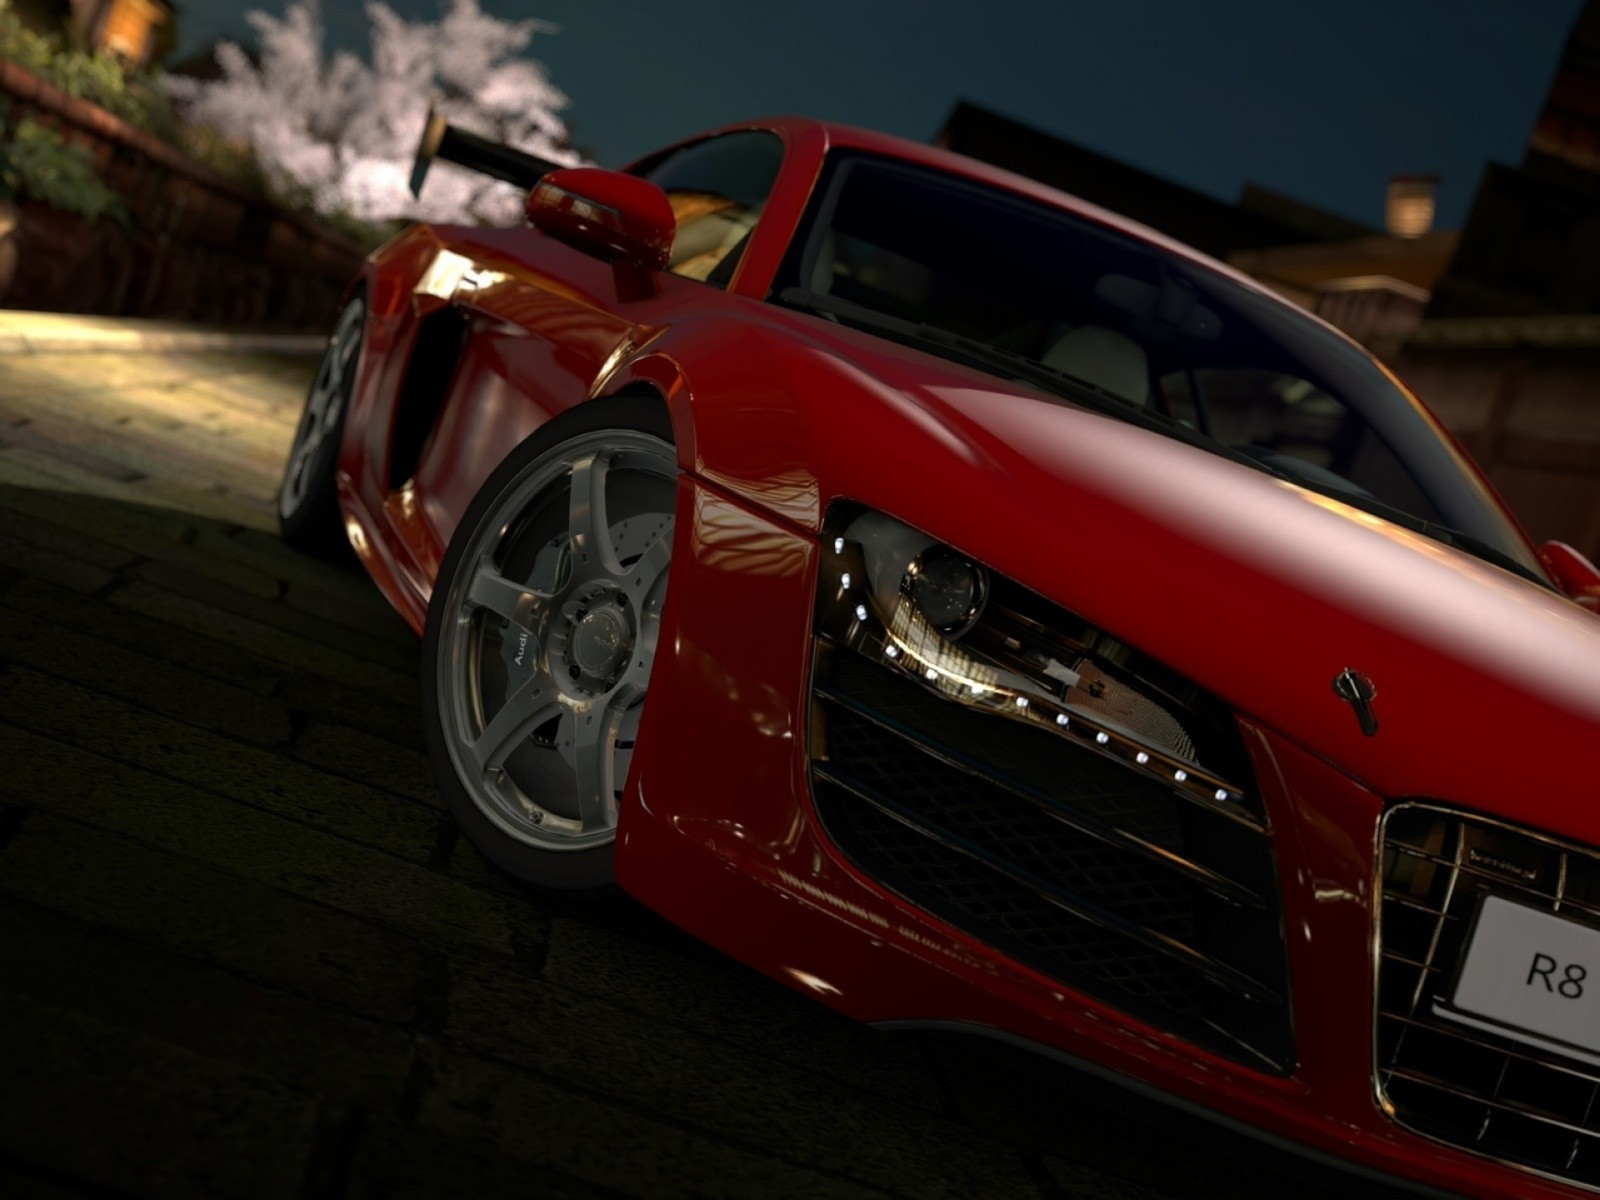 red cars audi r8 HD Wallpaper